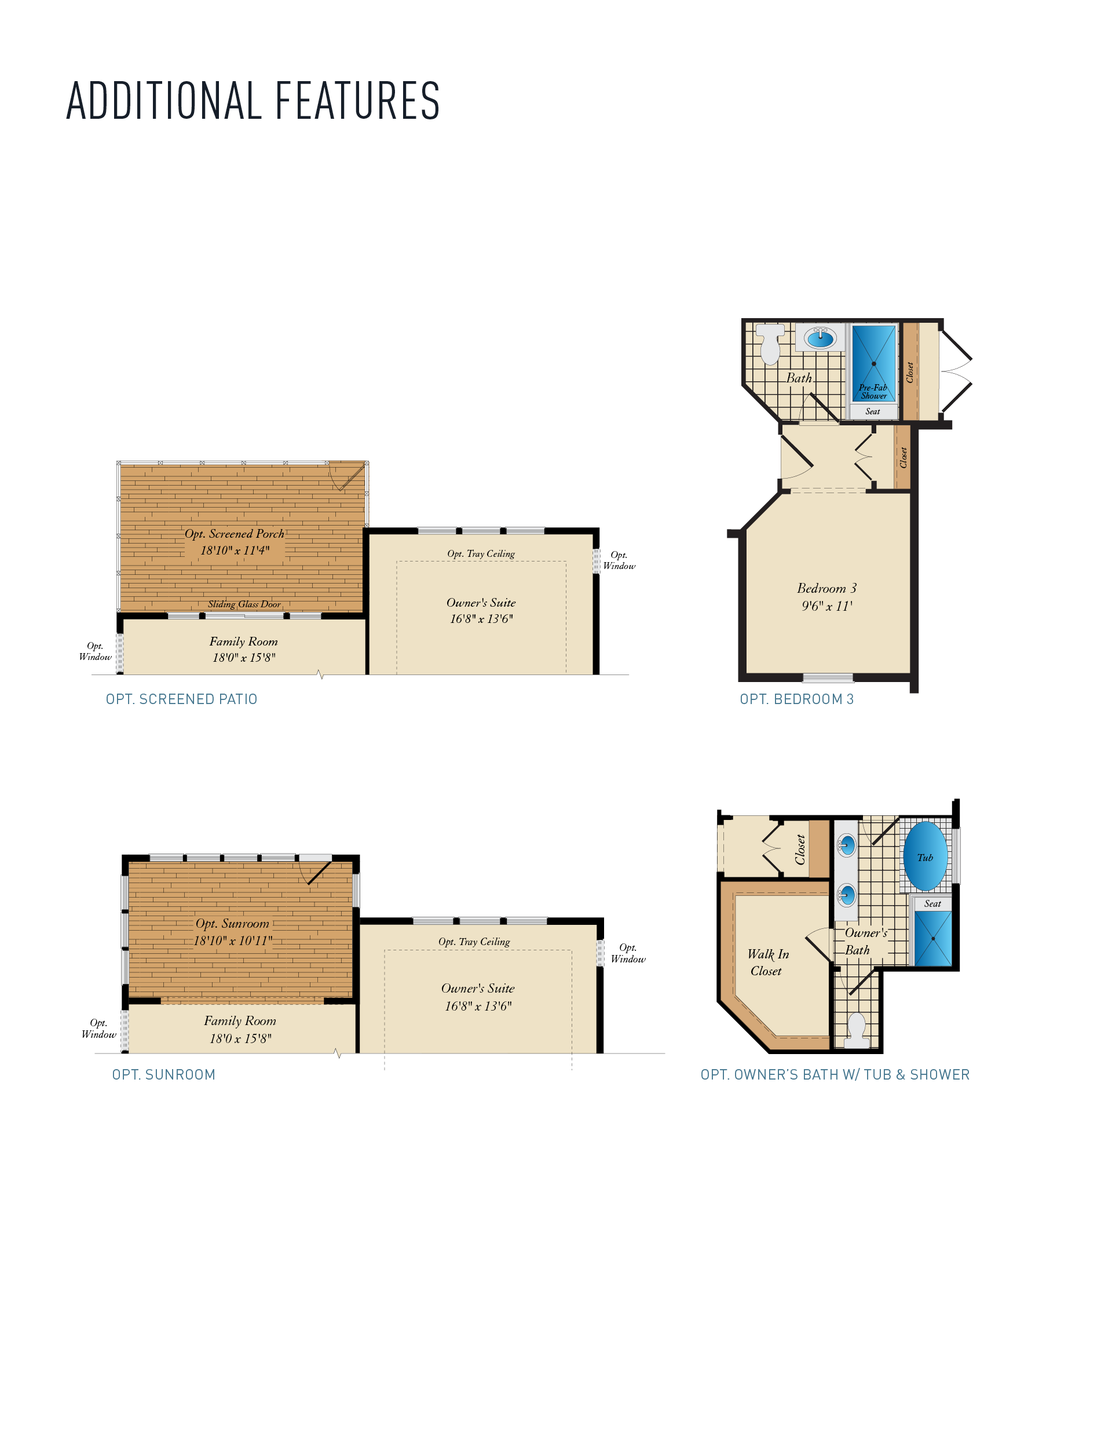 Additional Features. Hayes Home with 2 Bedrooms